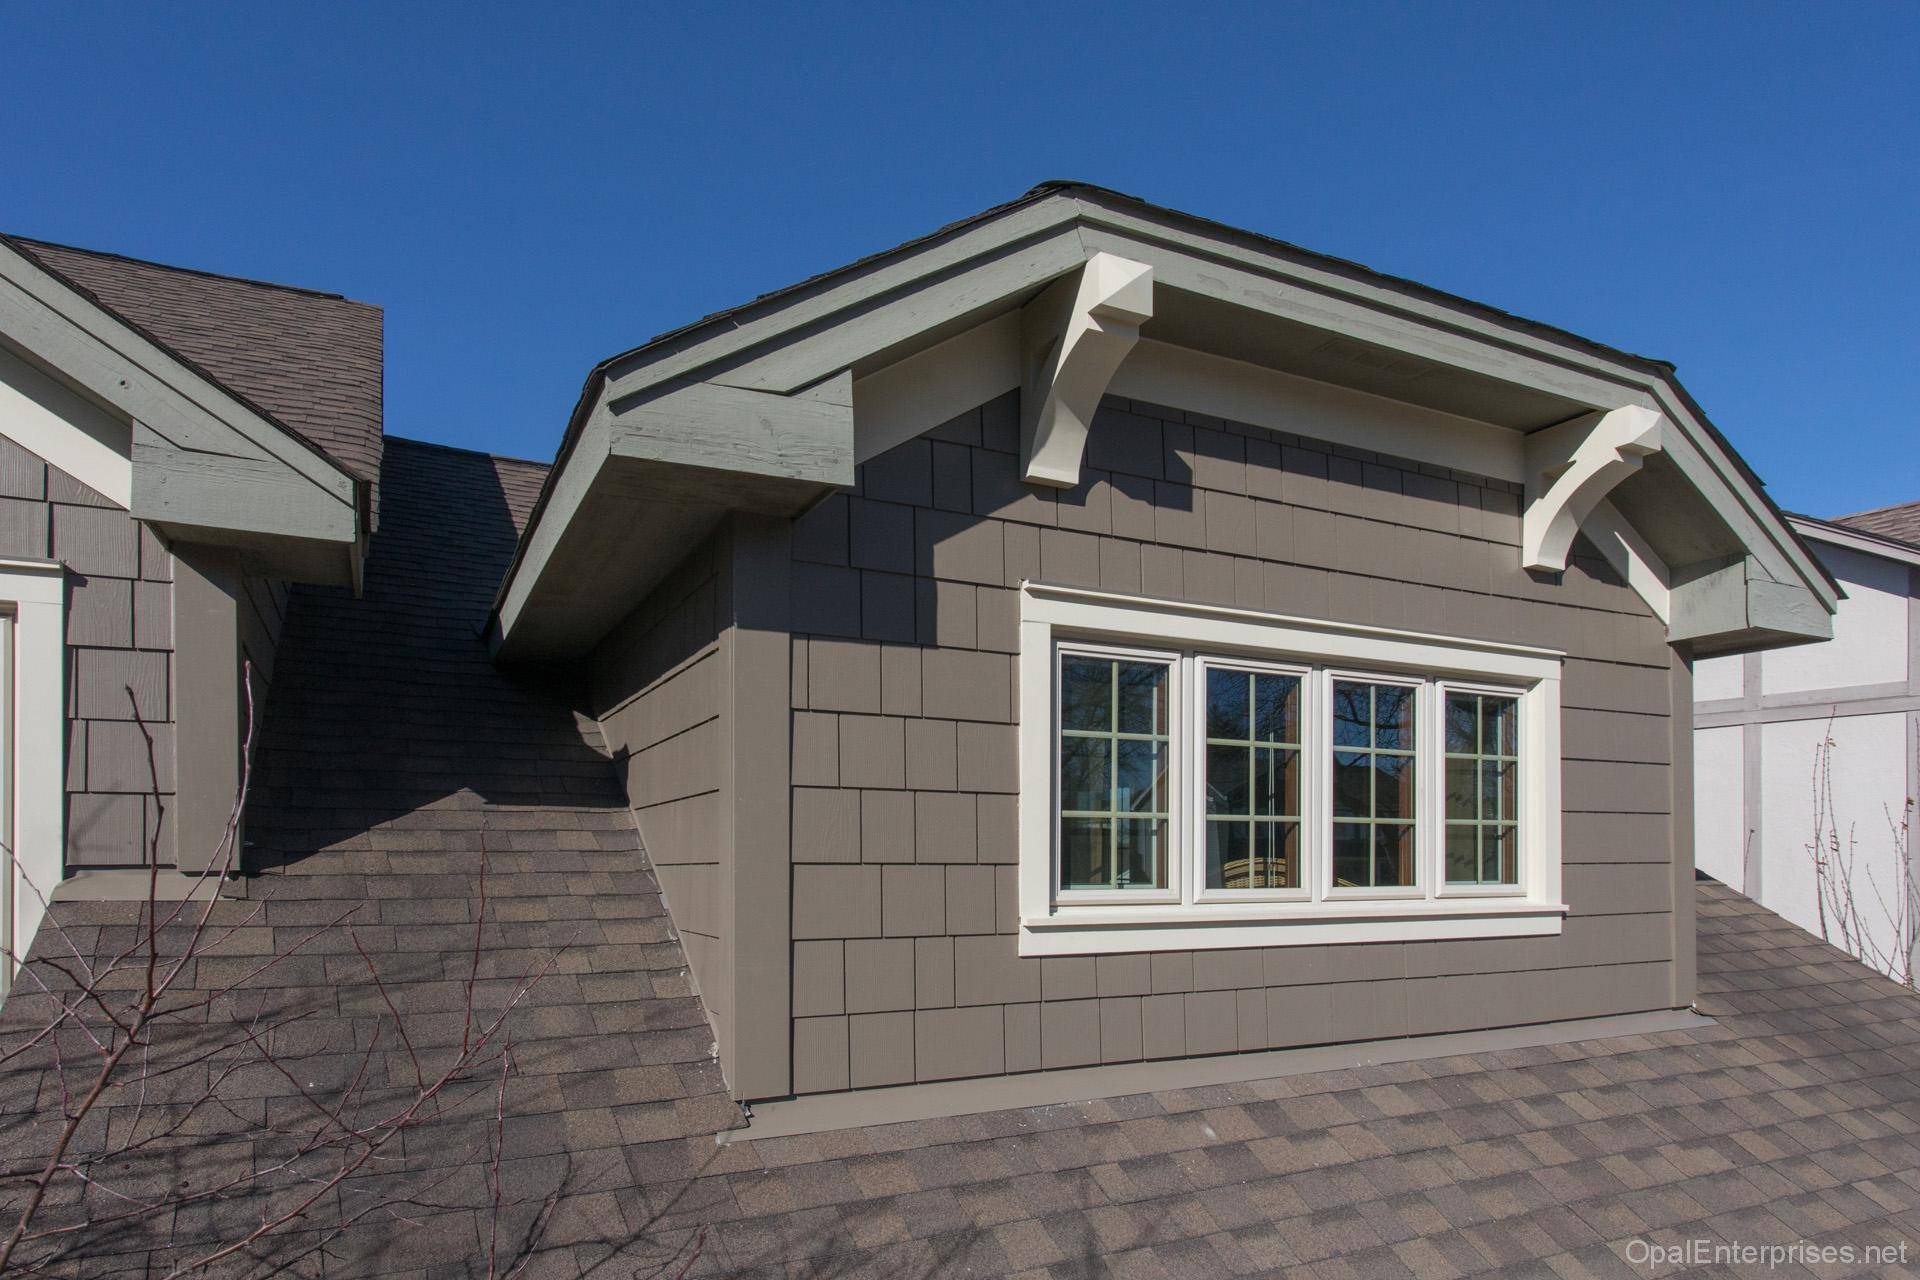 Naperville after siding and corbels installation on dormers